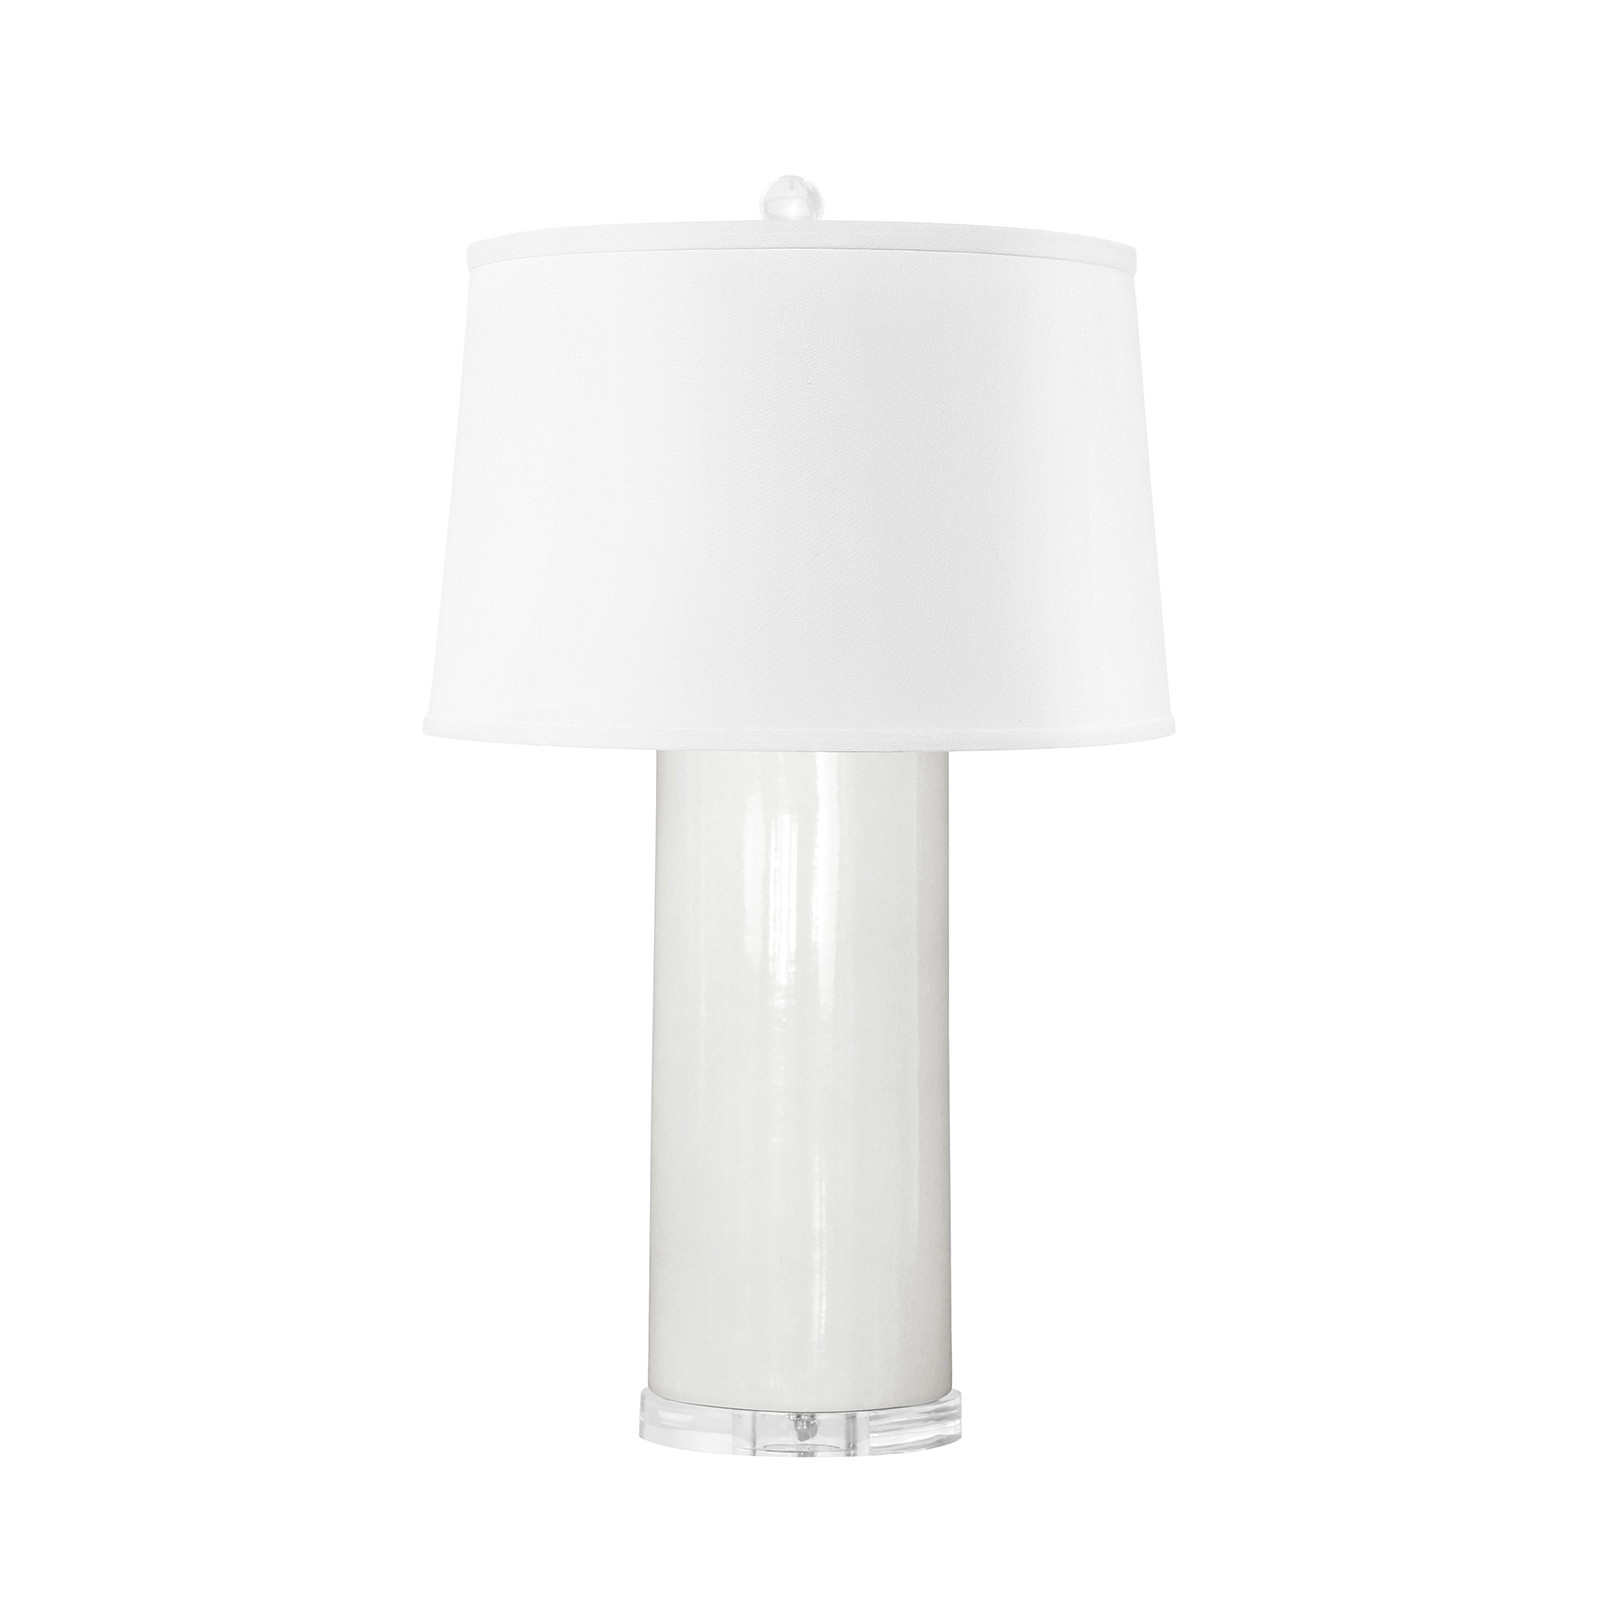 Formosa Lamp (Lamp Only), White - Bungalow 5